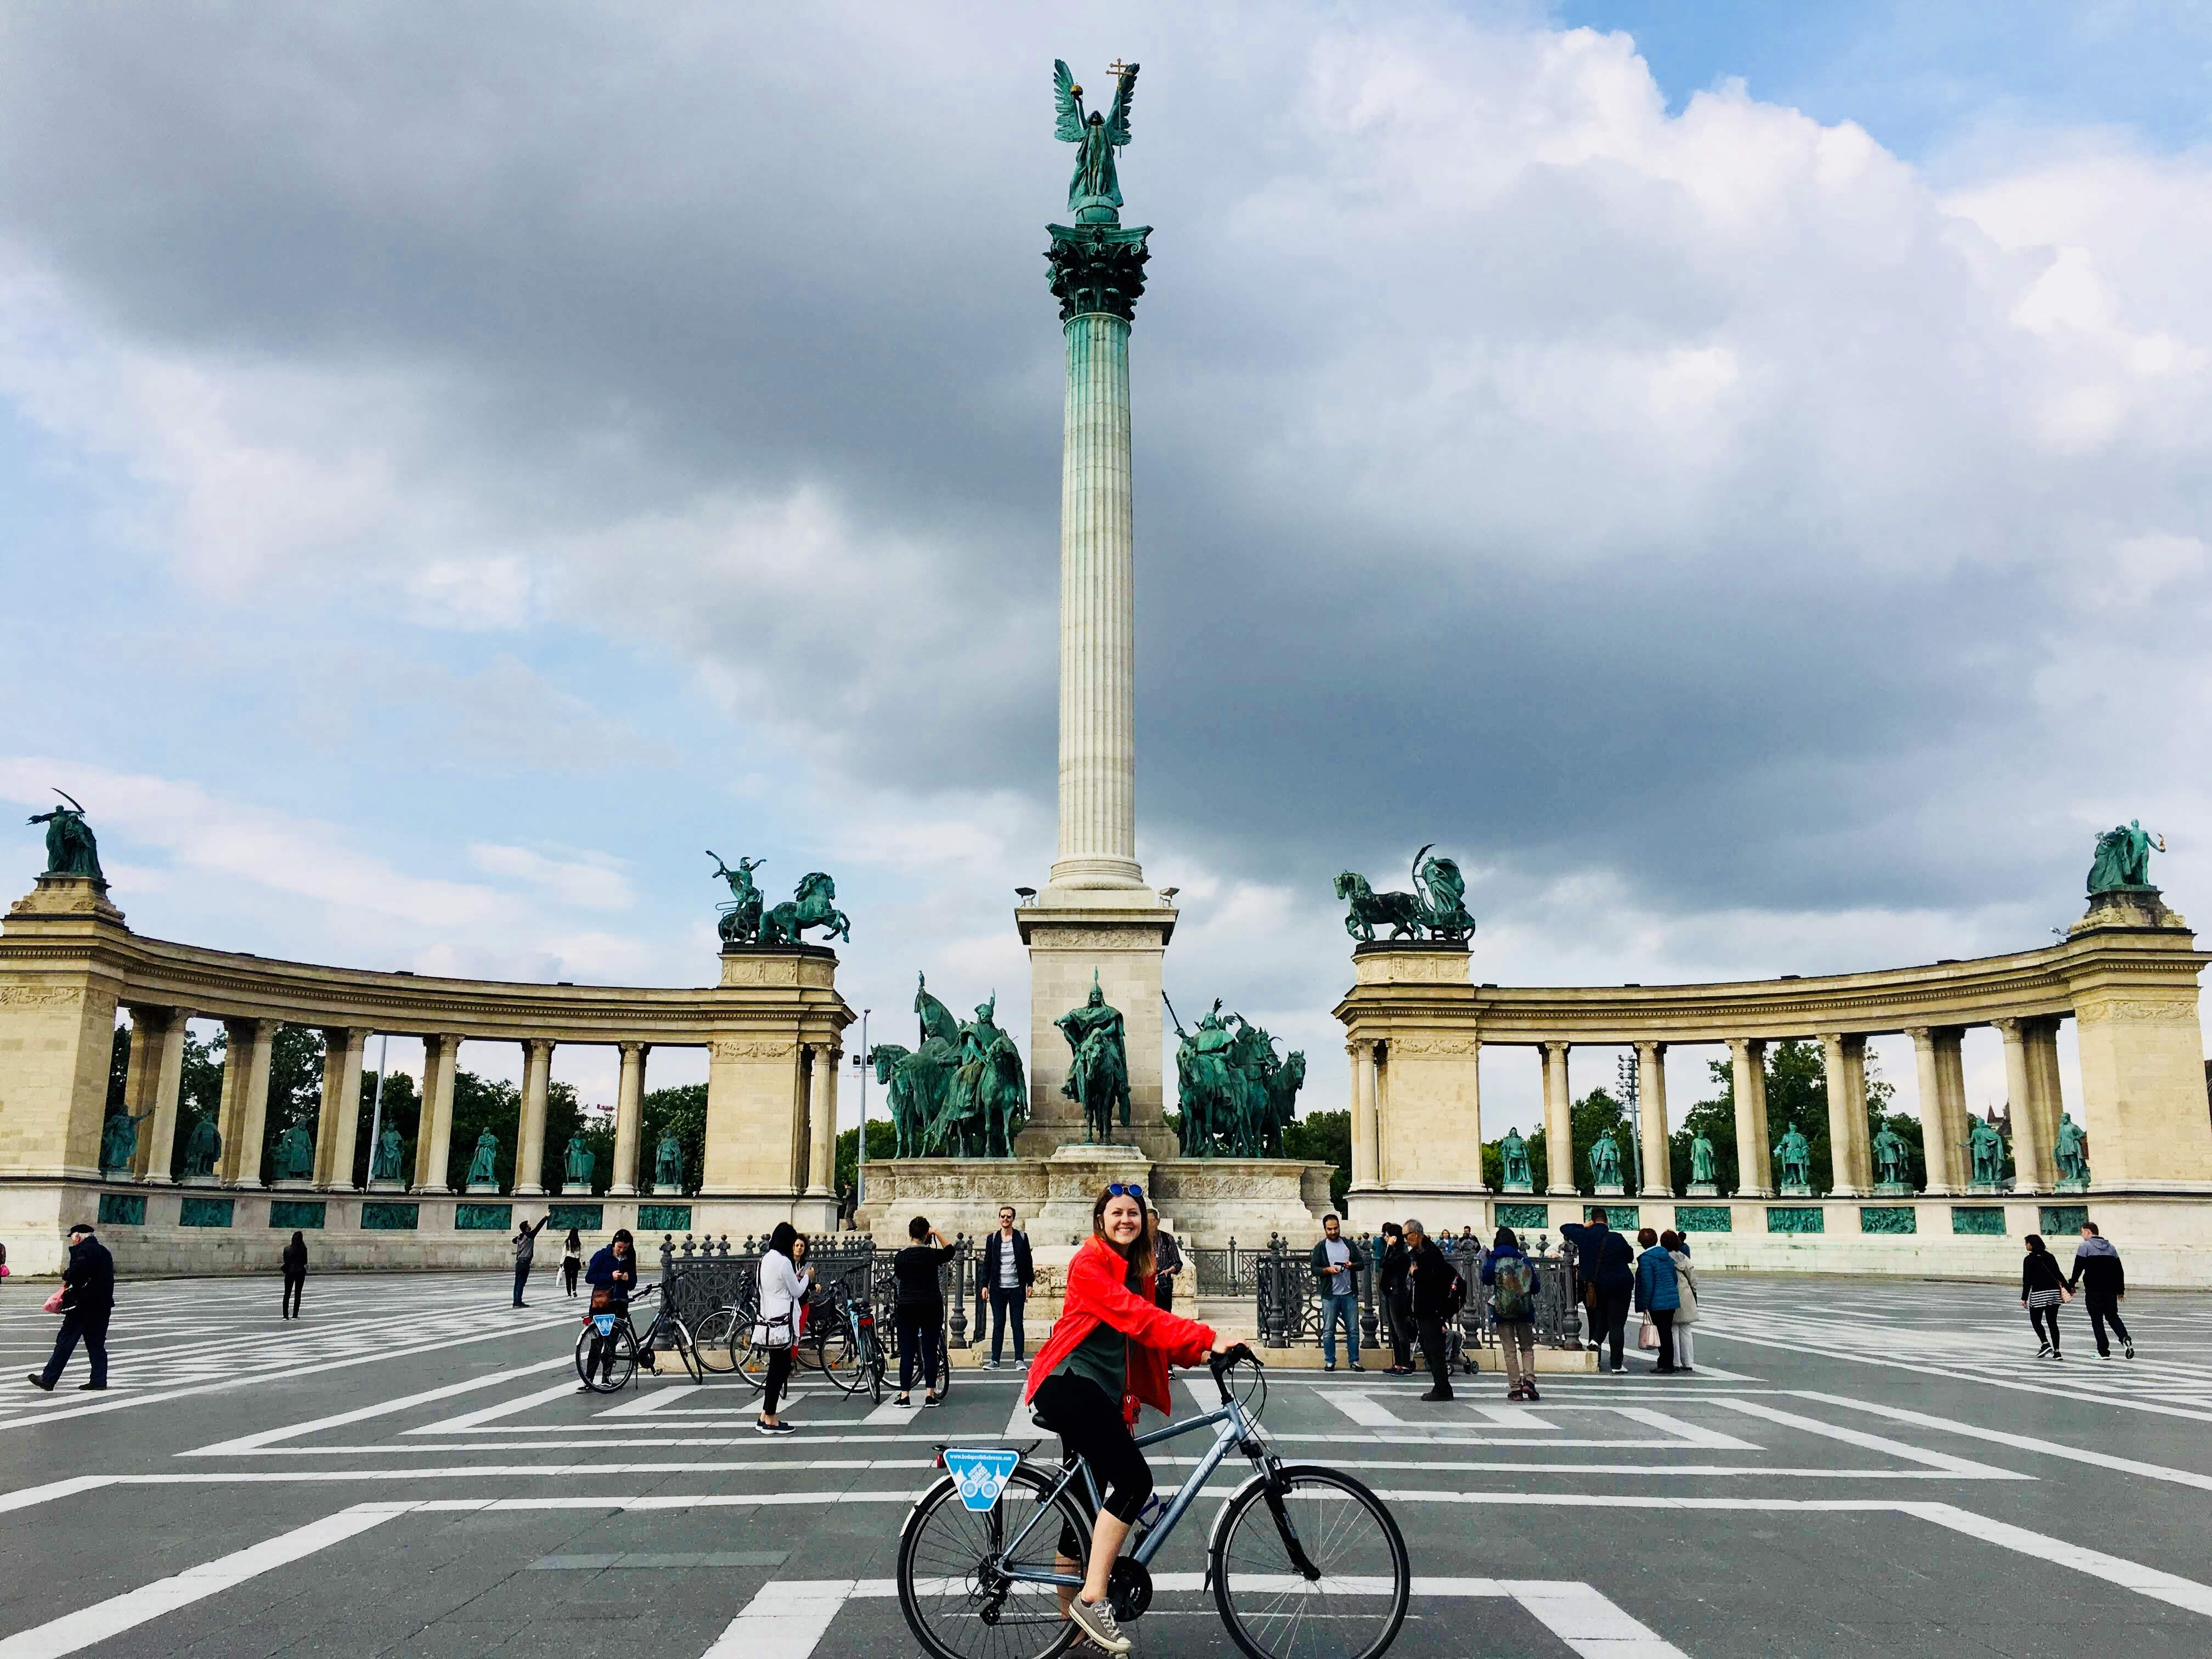 Alexi Doak software engineer intern traveling Budapest Hungary bike tour